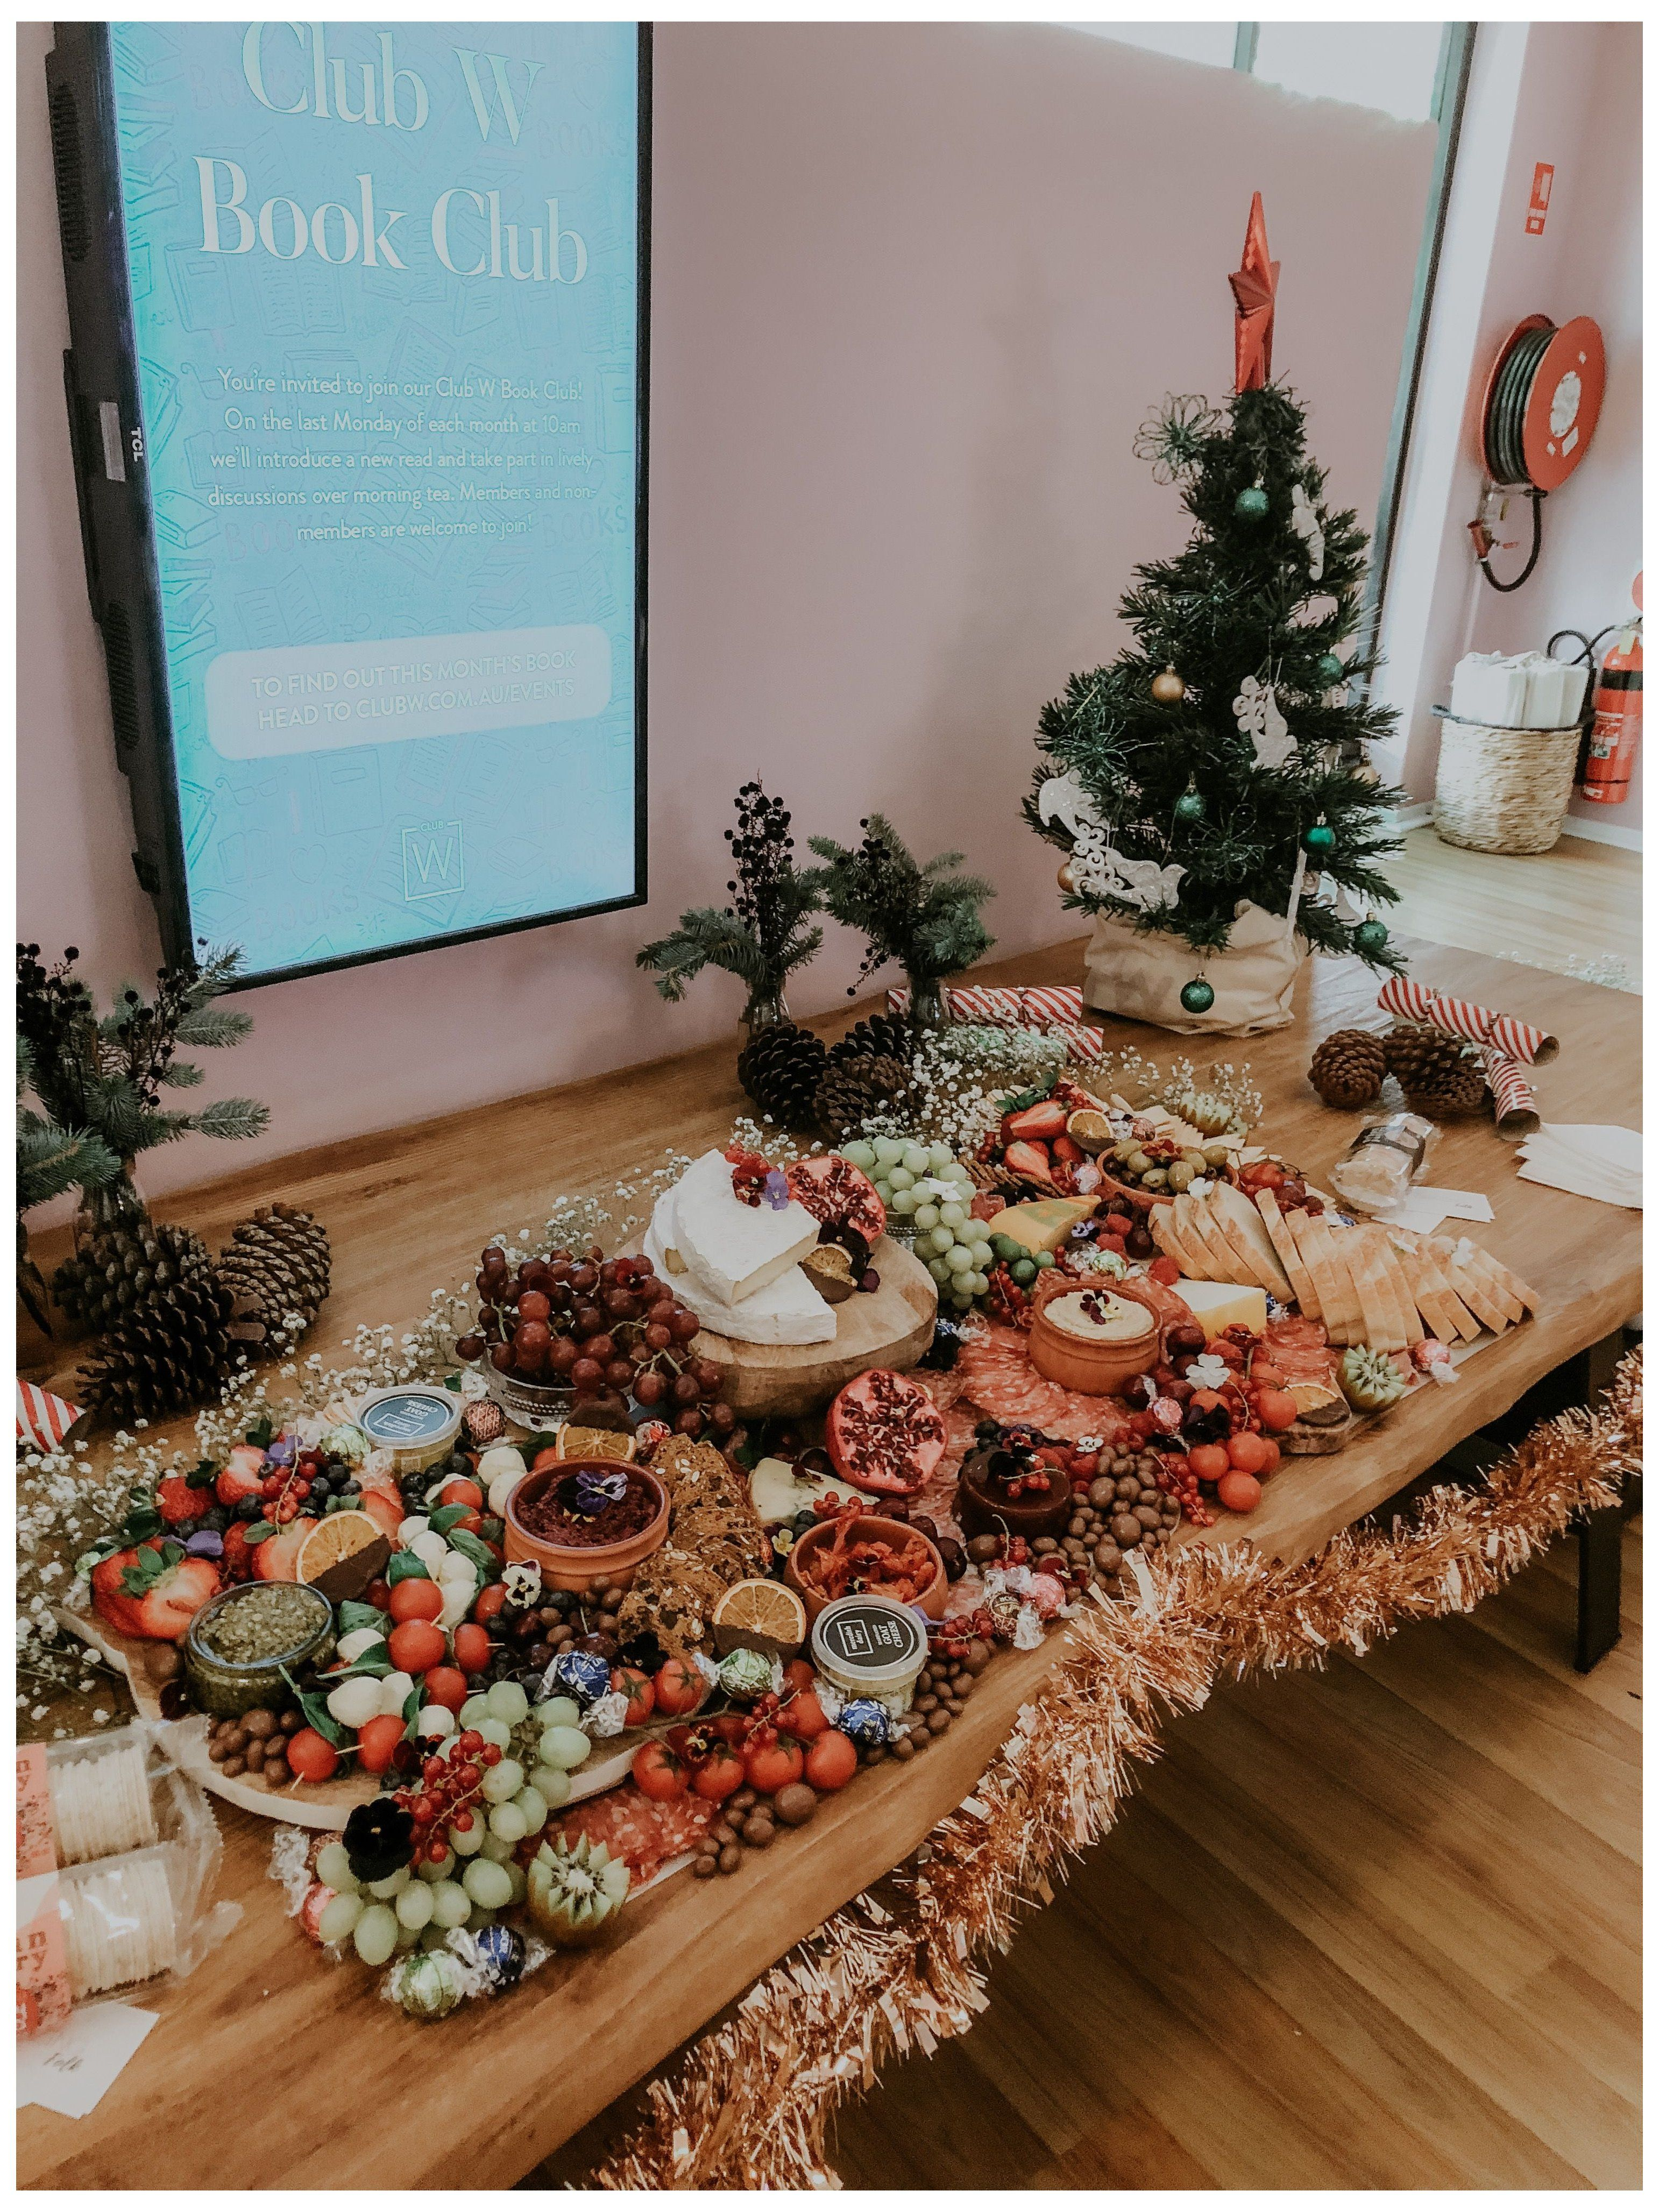 Pin By Kristina B On Baby Shower In 2020 Christmas Party Buffet Christmas Buffet Christmas Catering